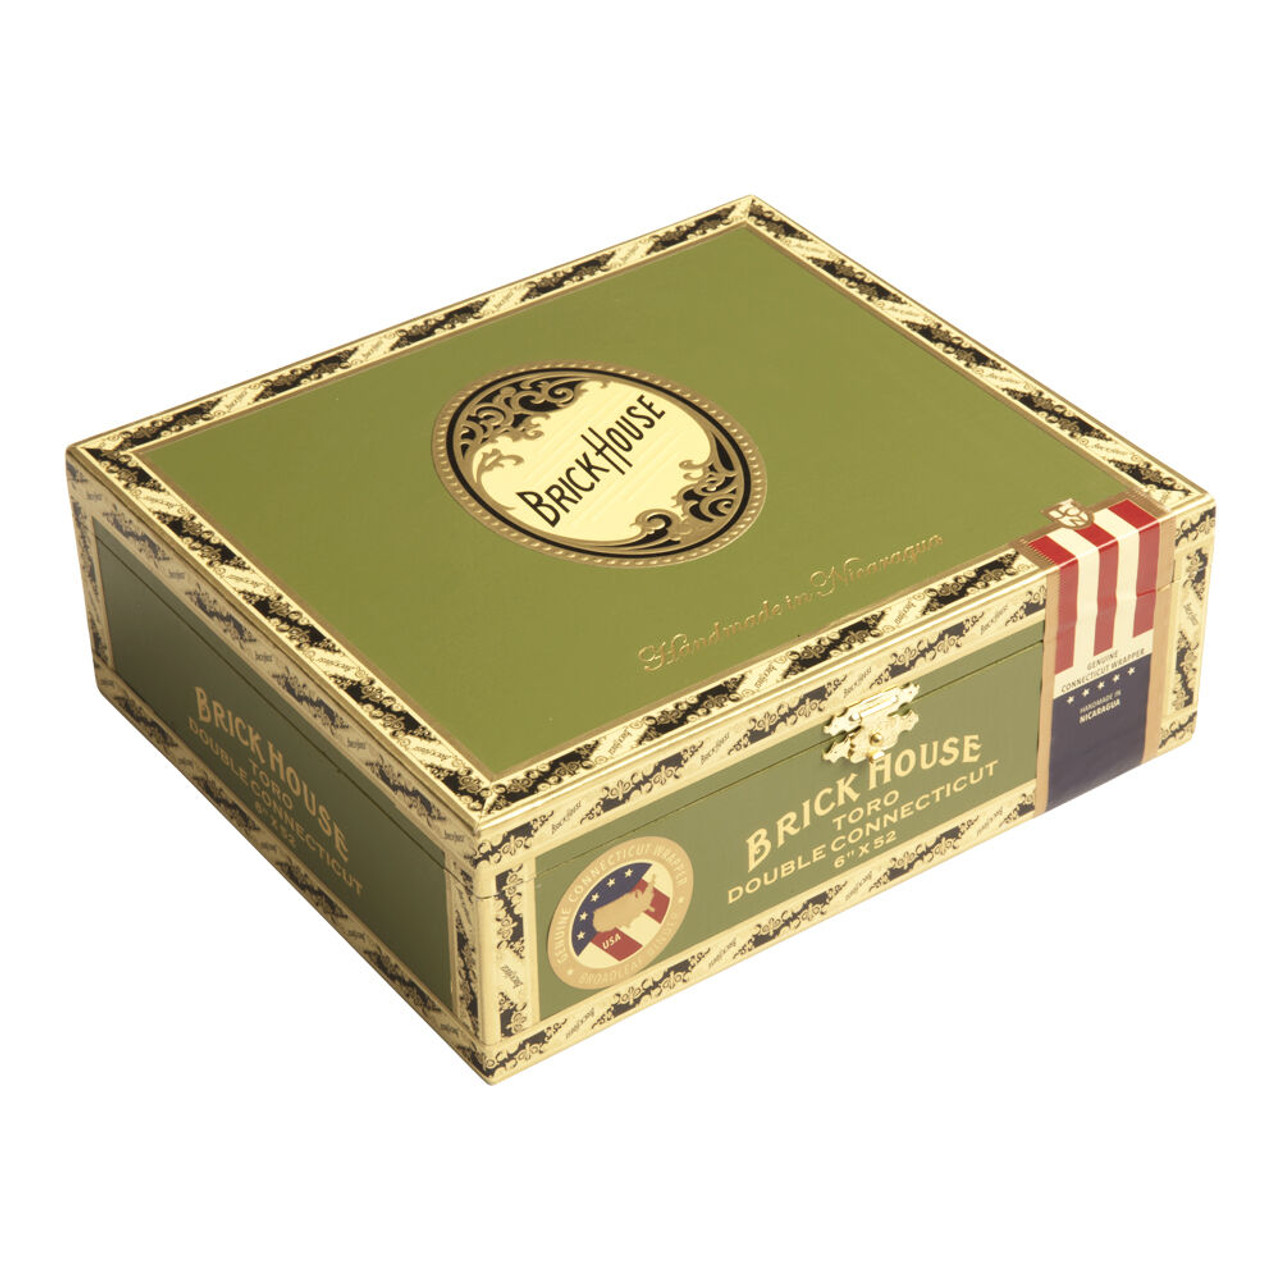 Brick House Double Connecticut Toro Cigars - 6 x 52 (Box of 25)